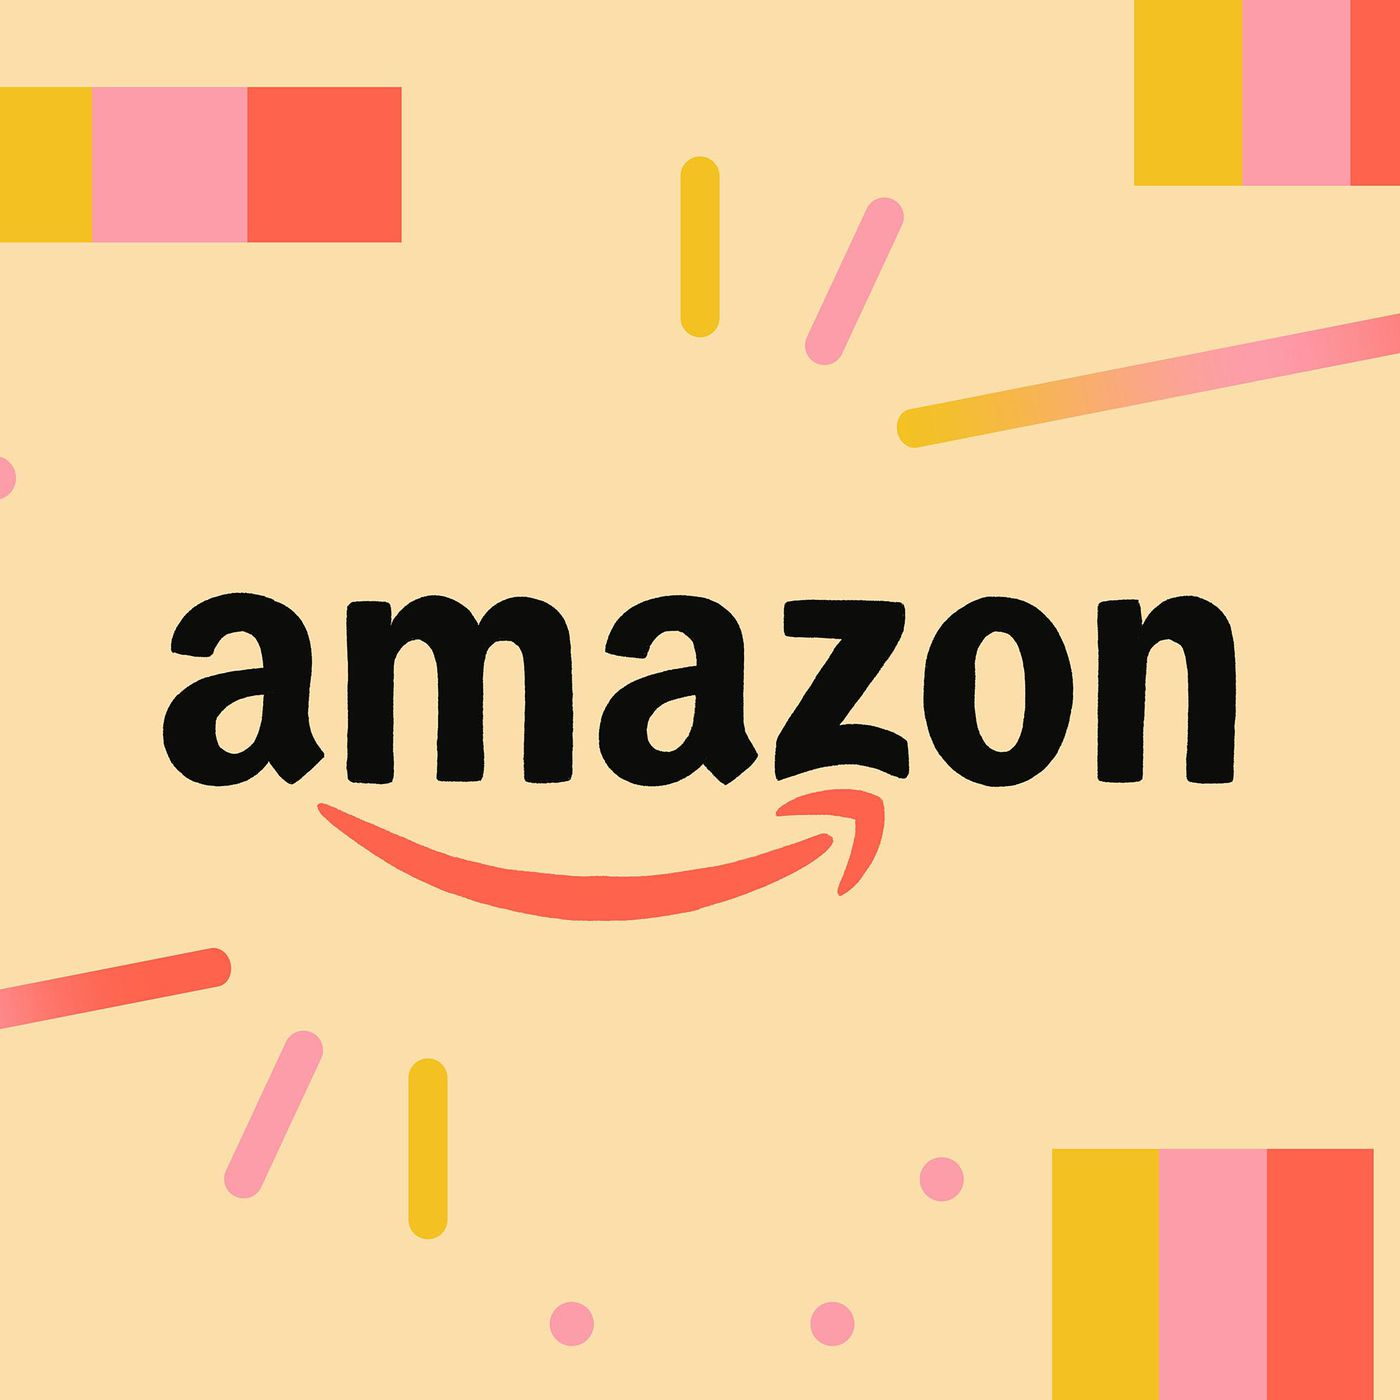 Amazon Music Logo - Amazon Prime Day 2019: When does it start and end? - Curbed